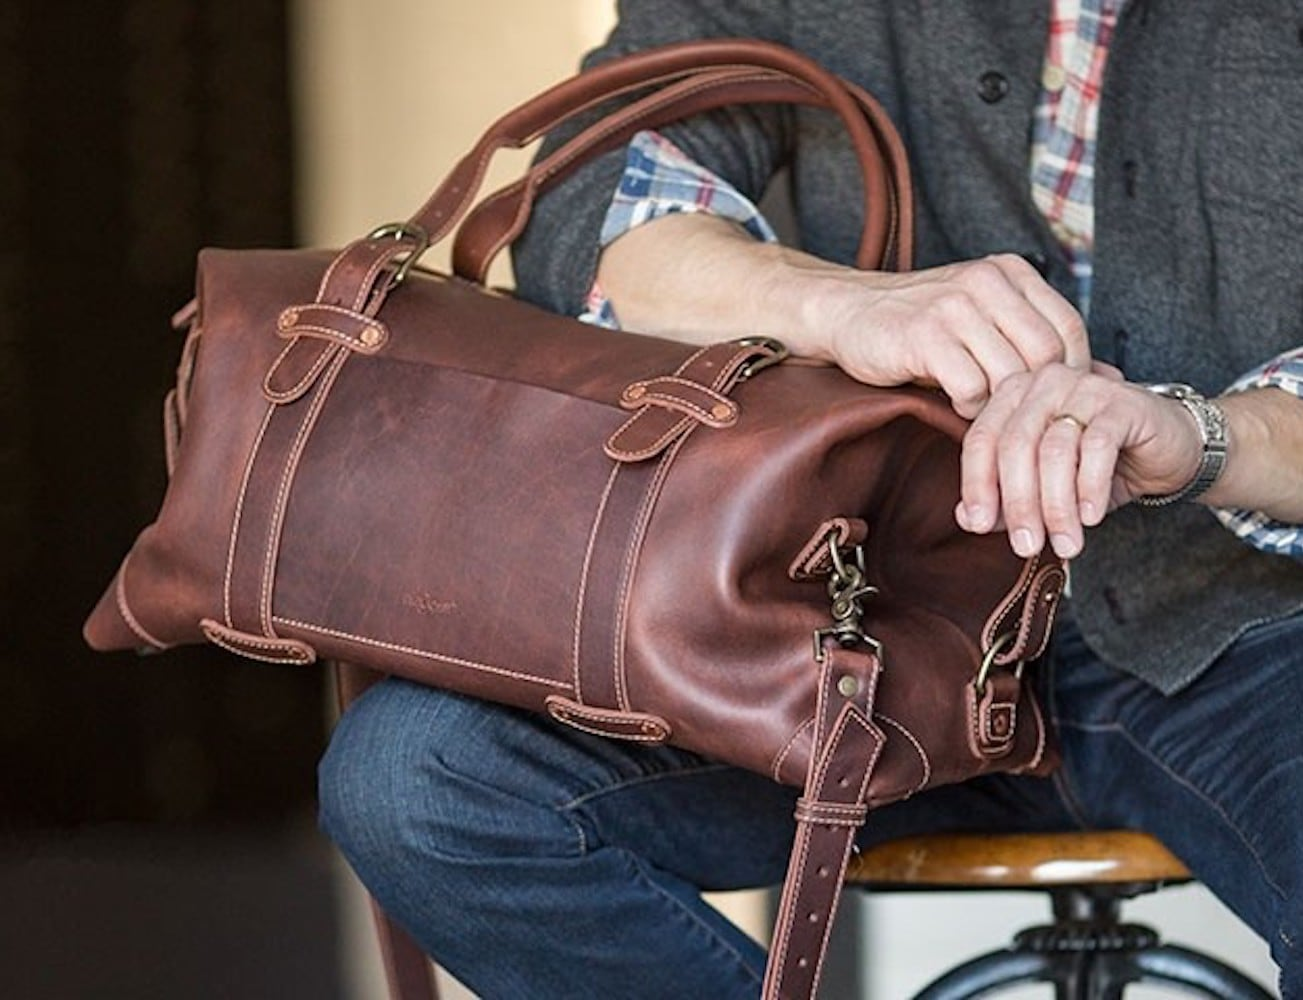 Pad & Quill Heritage Leather Duffle Weekender Bag offers lots of space for your stuff